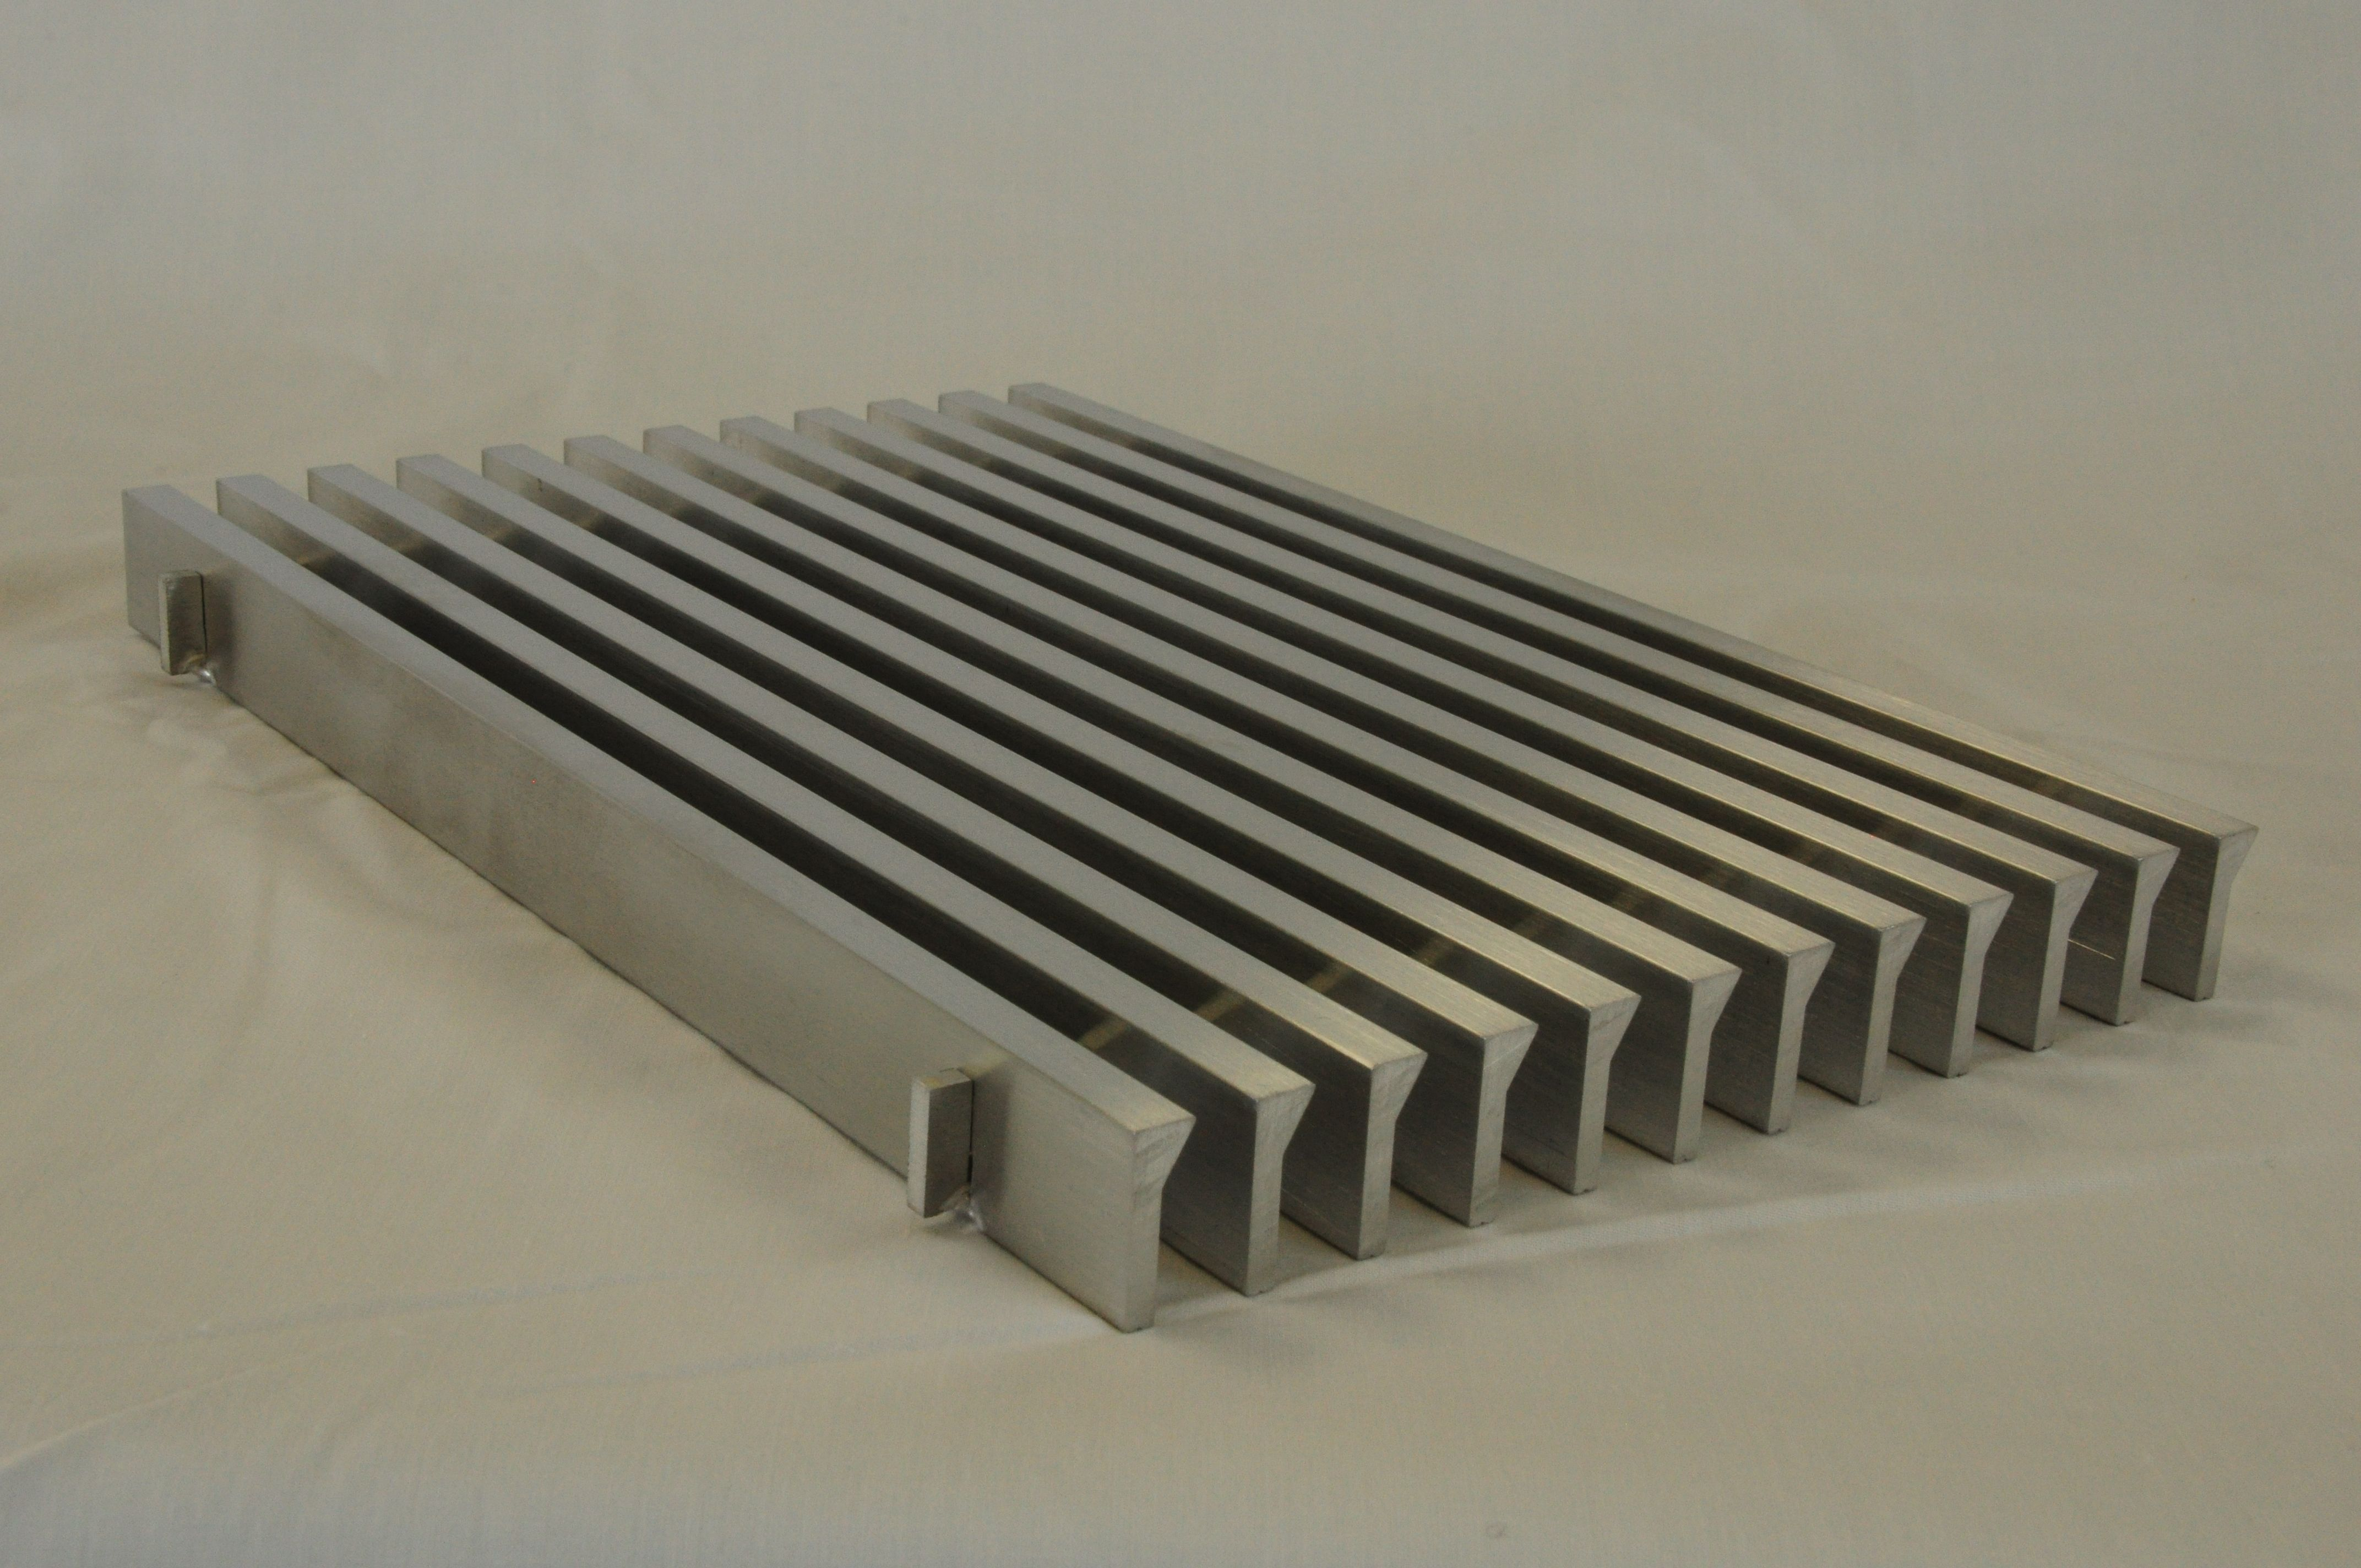 CA200 Linear Metal bar grille with a 30 degree air